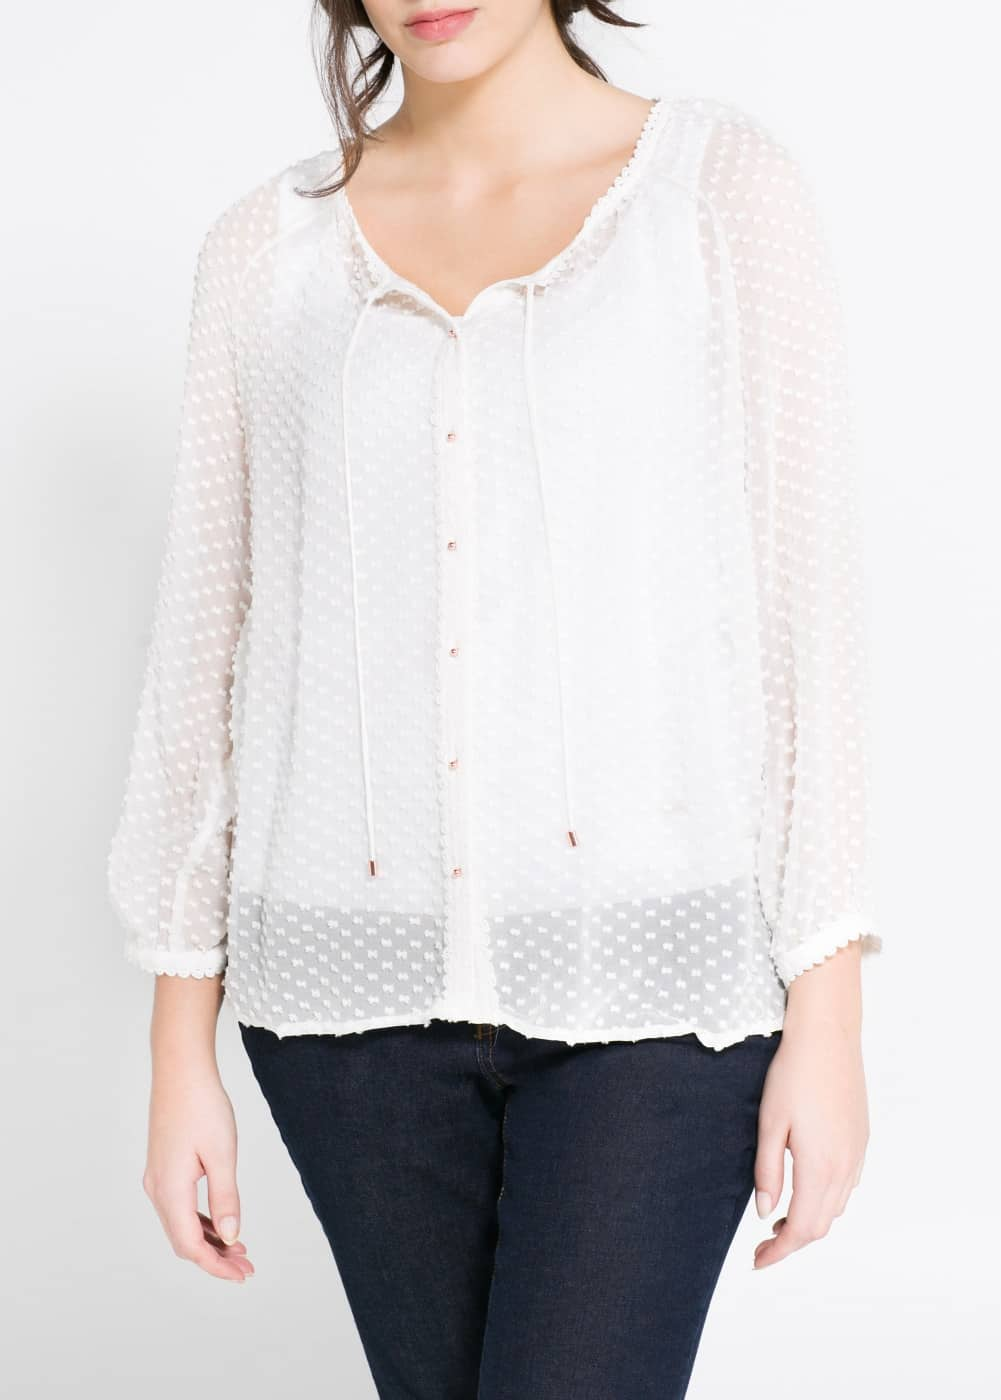 Plumeti silk blouse